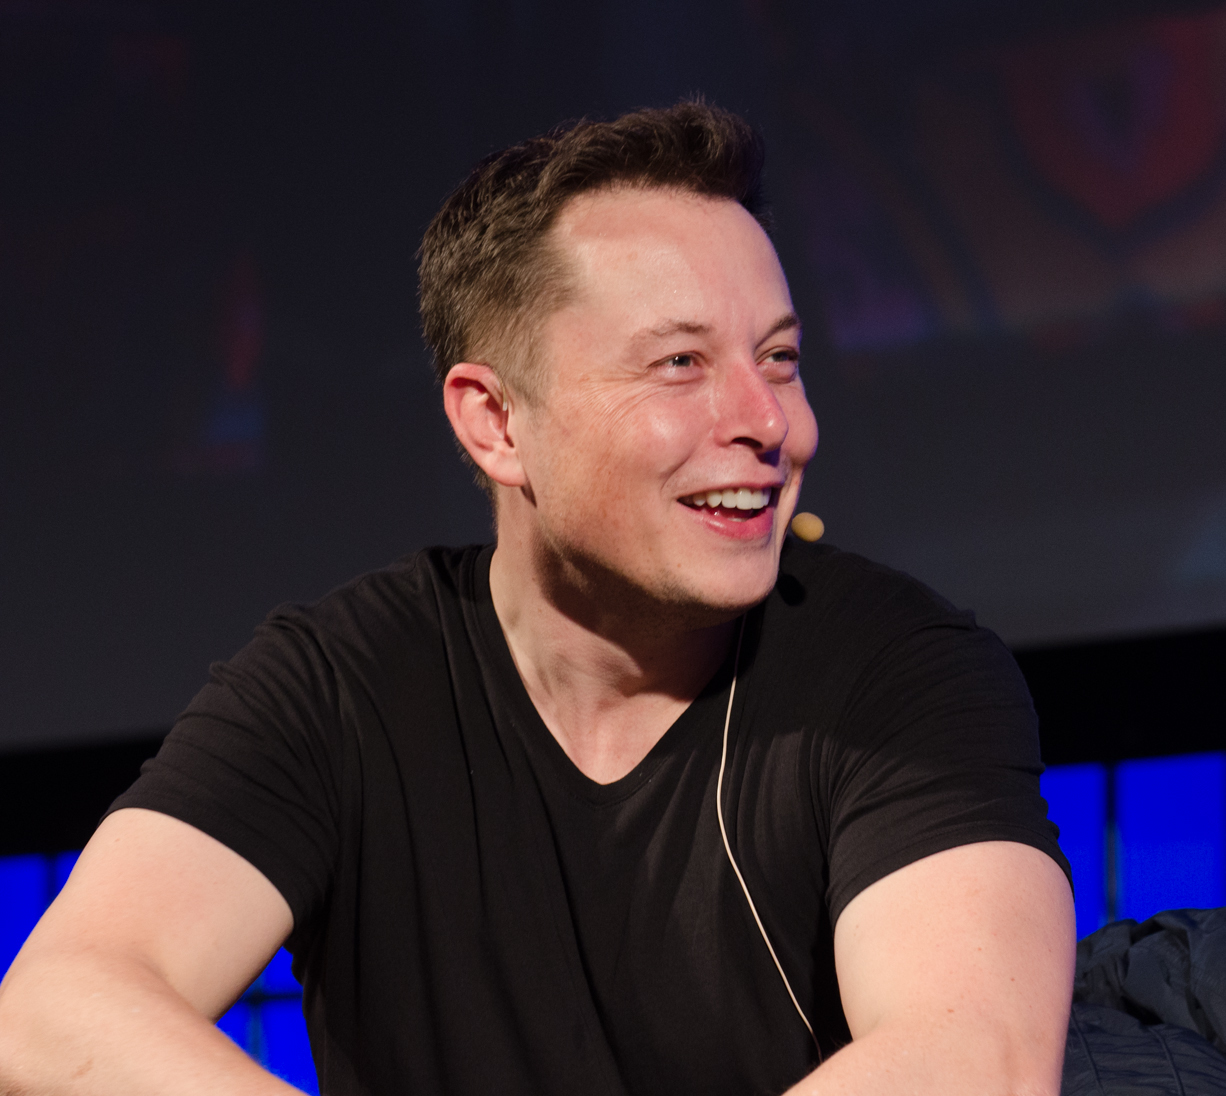 Elon Musk Says Lightning Network 'Needed' to Scale Bitcoin for Now